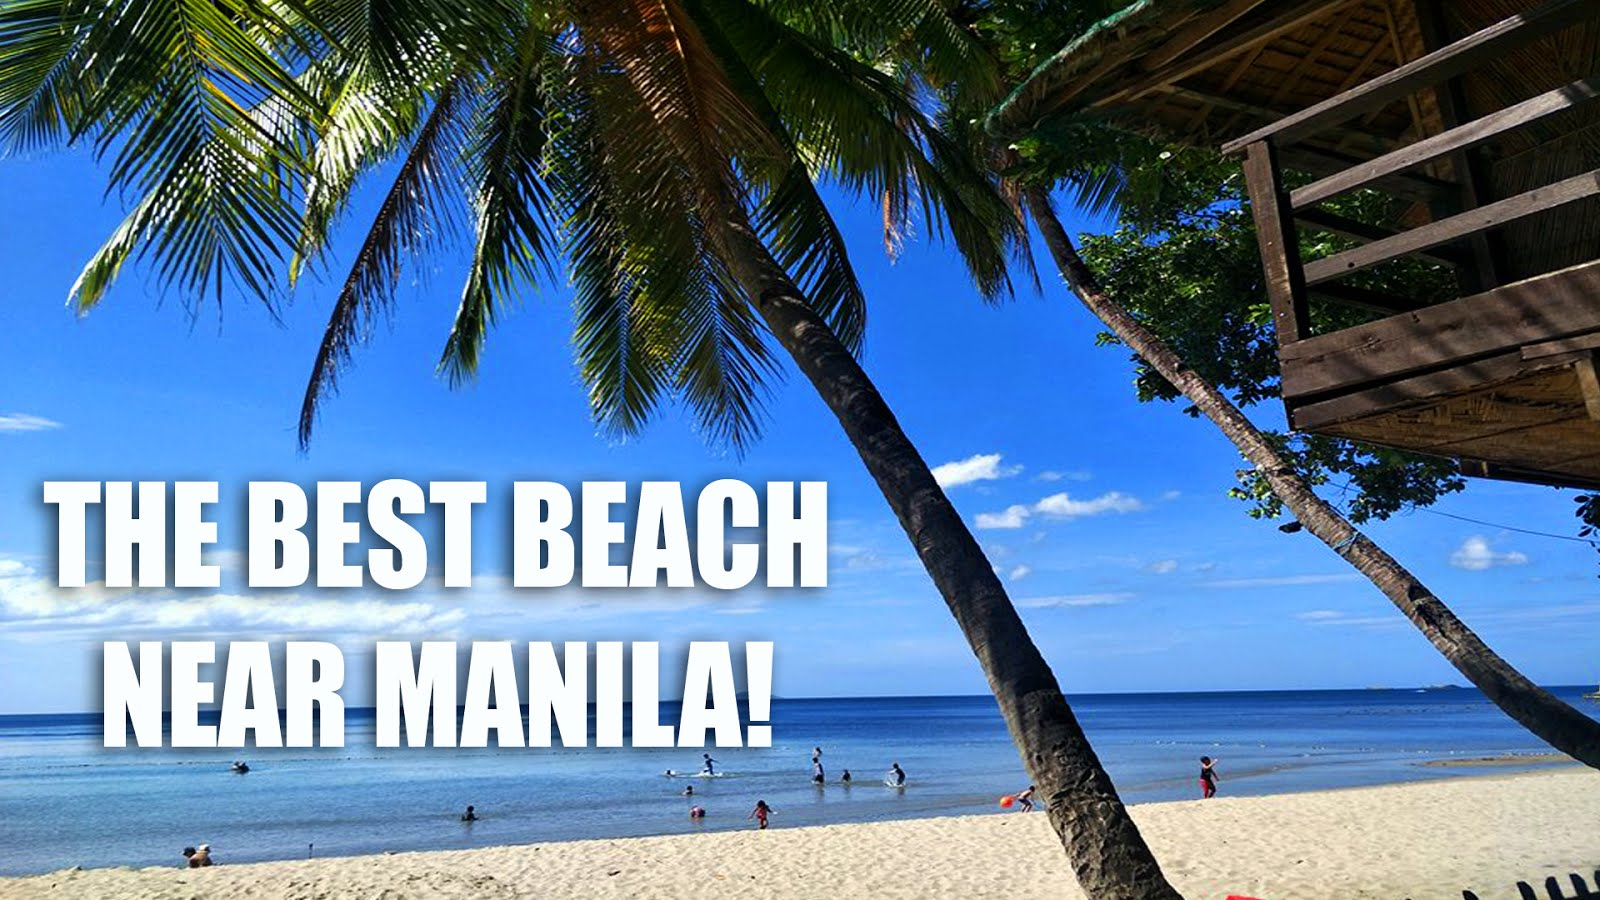 BEST BEACH NEAR MANILA